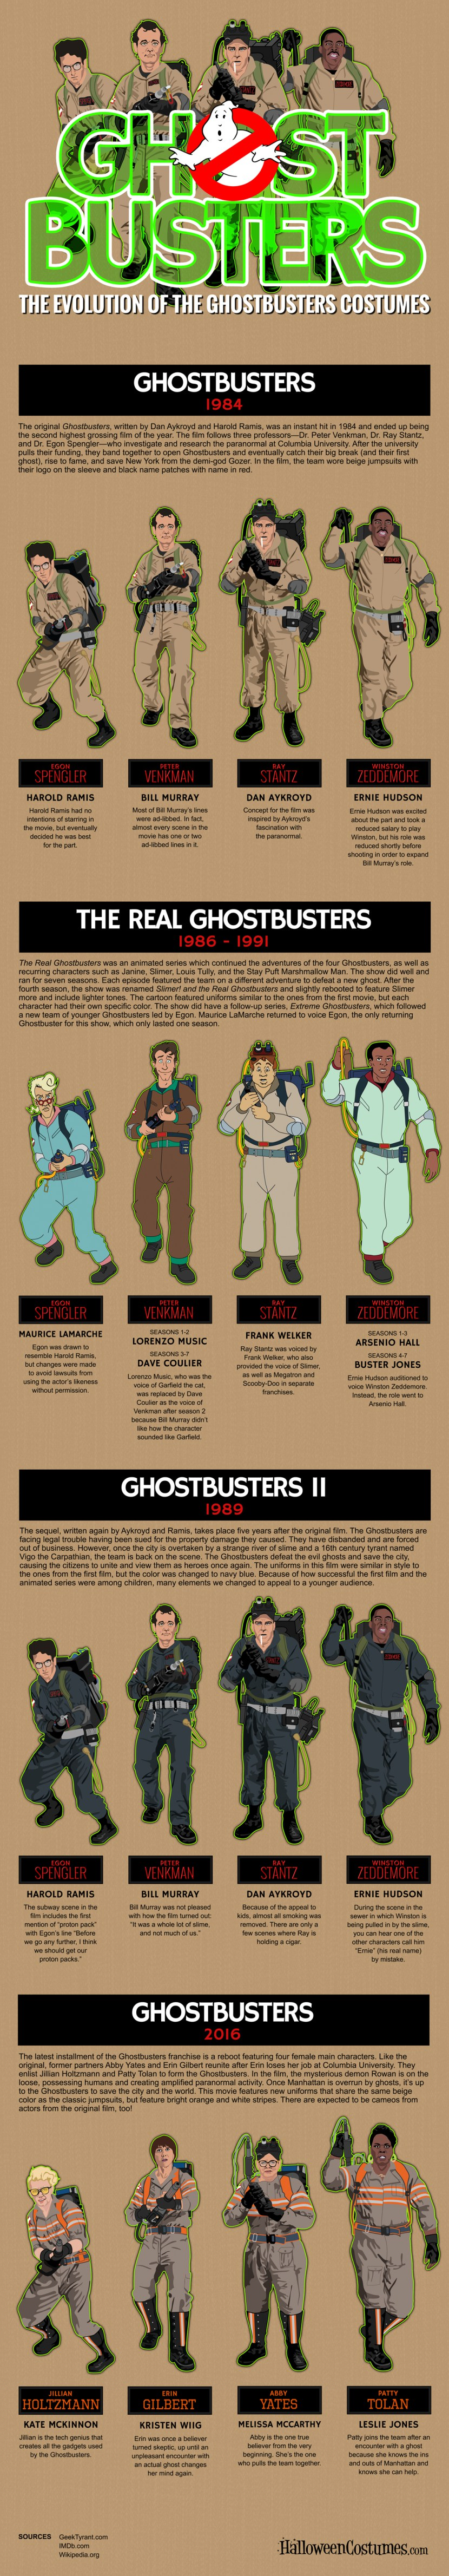 Ghostbusters-Costume-Evolution-Infographic.jpg